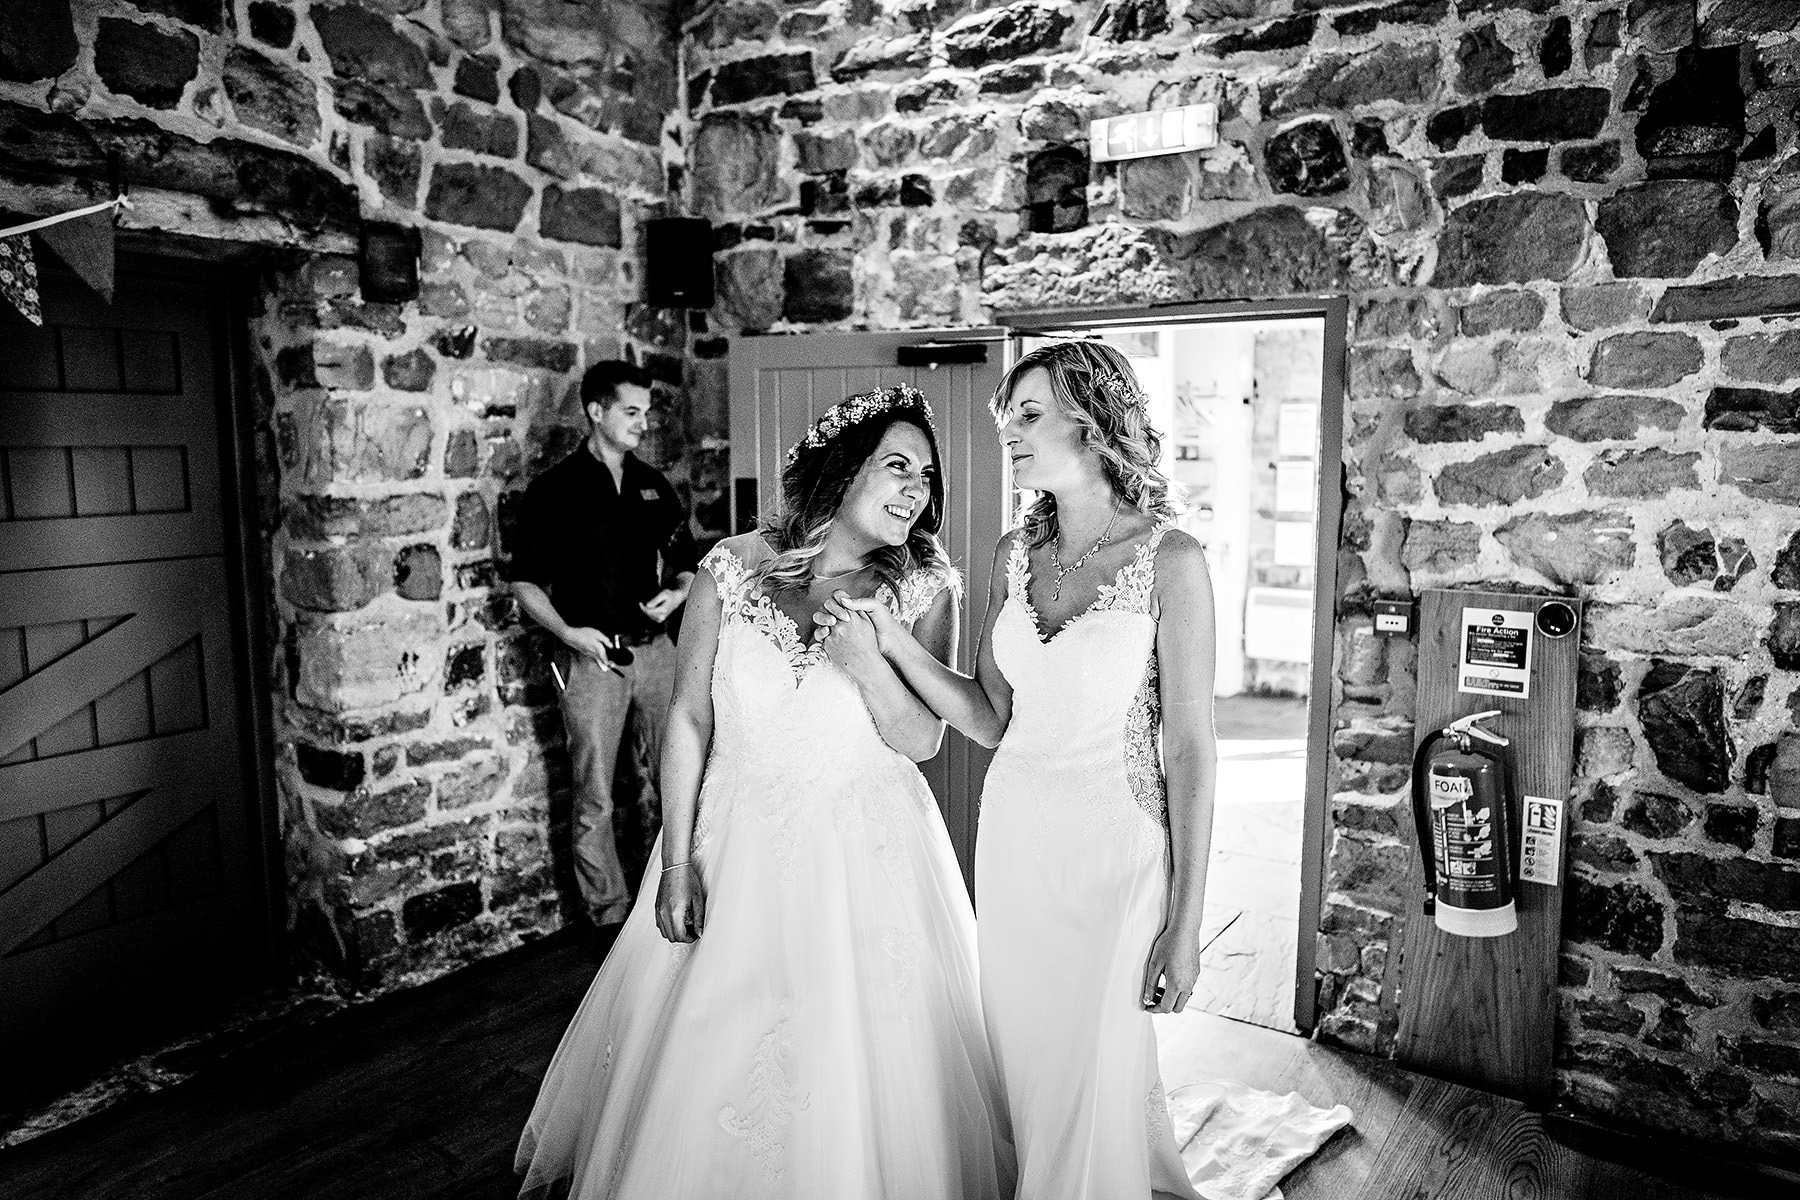 Two brides enter the wedding barn